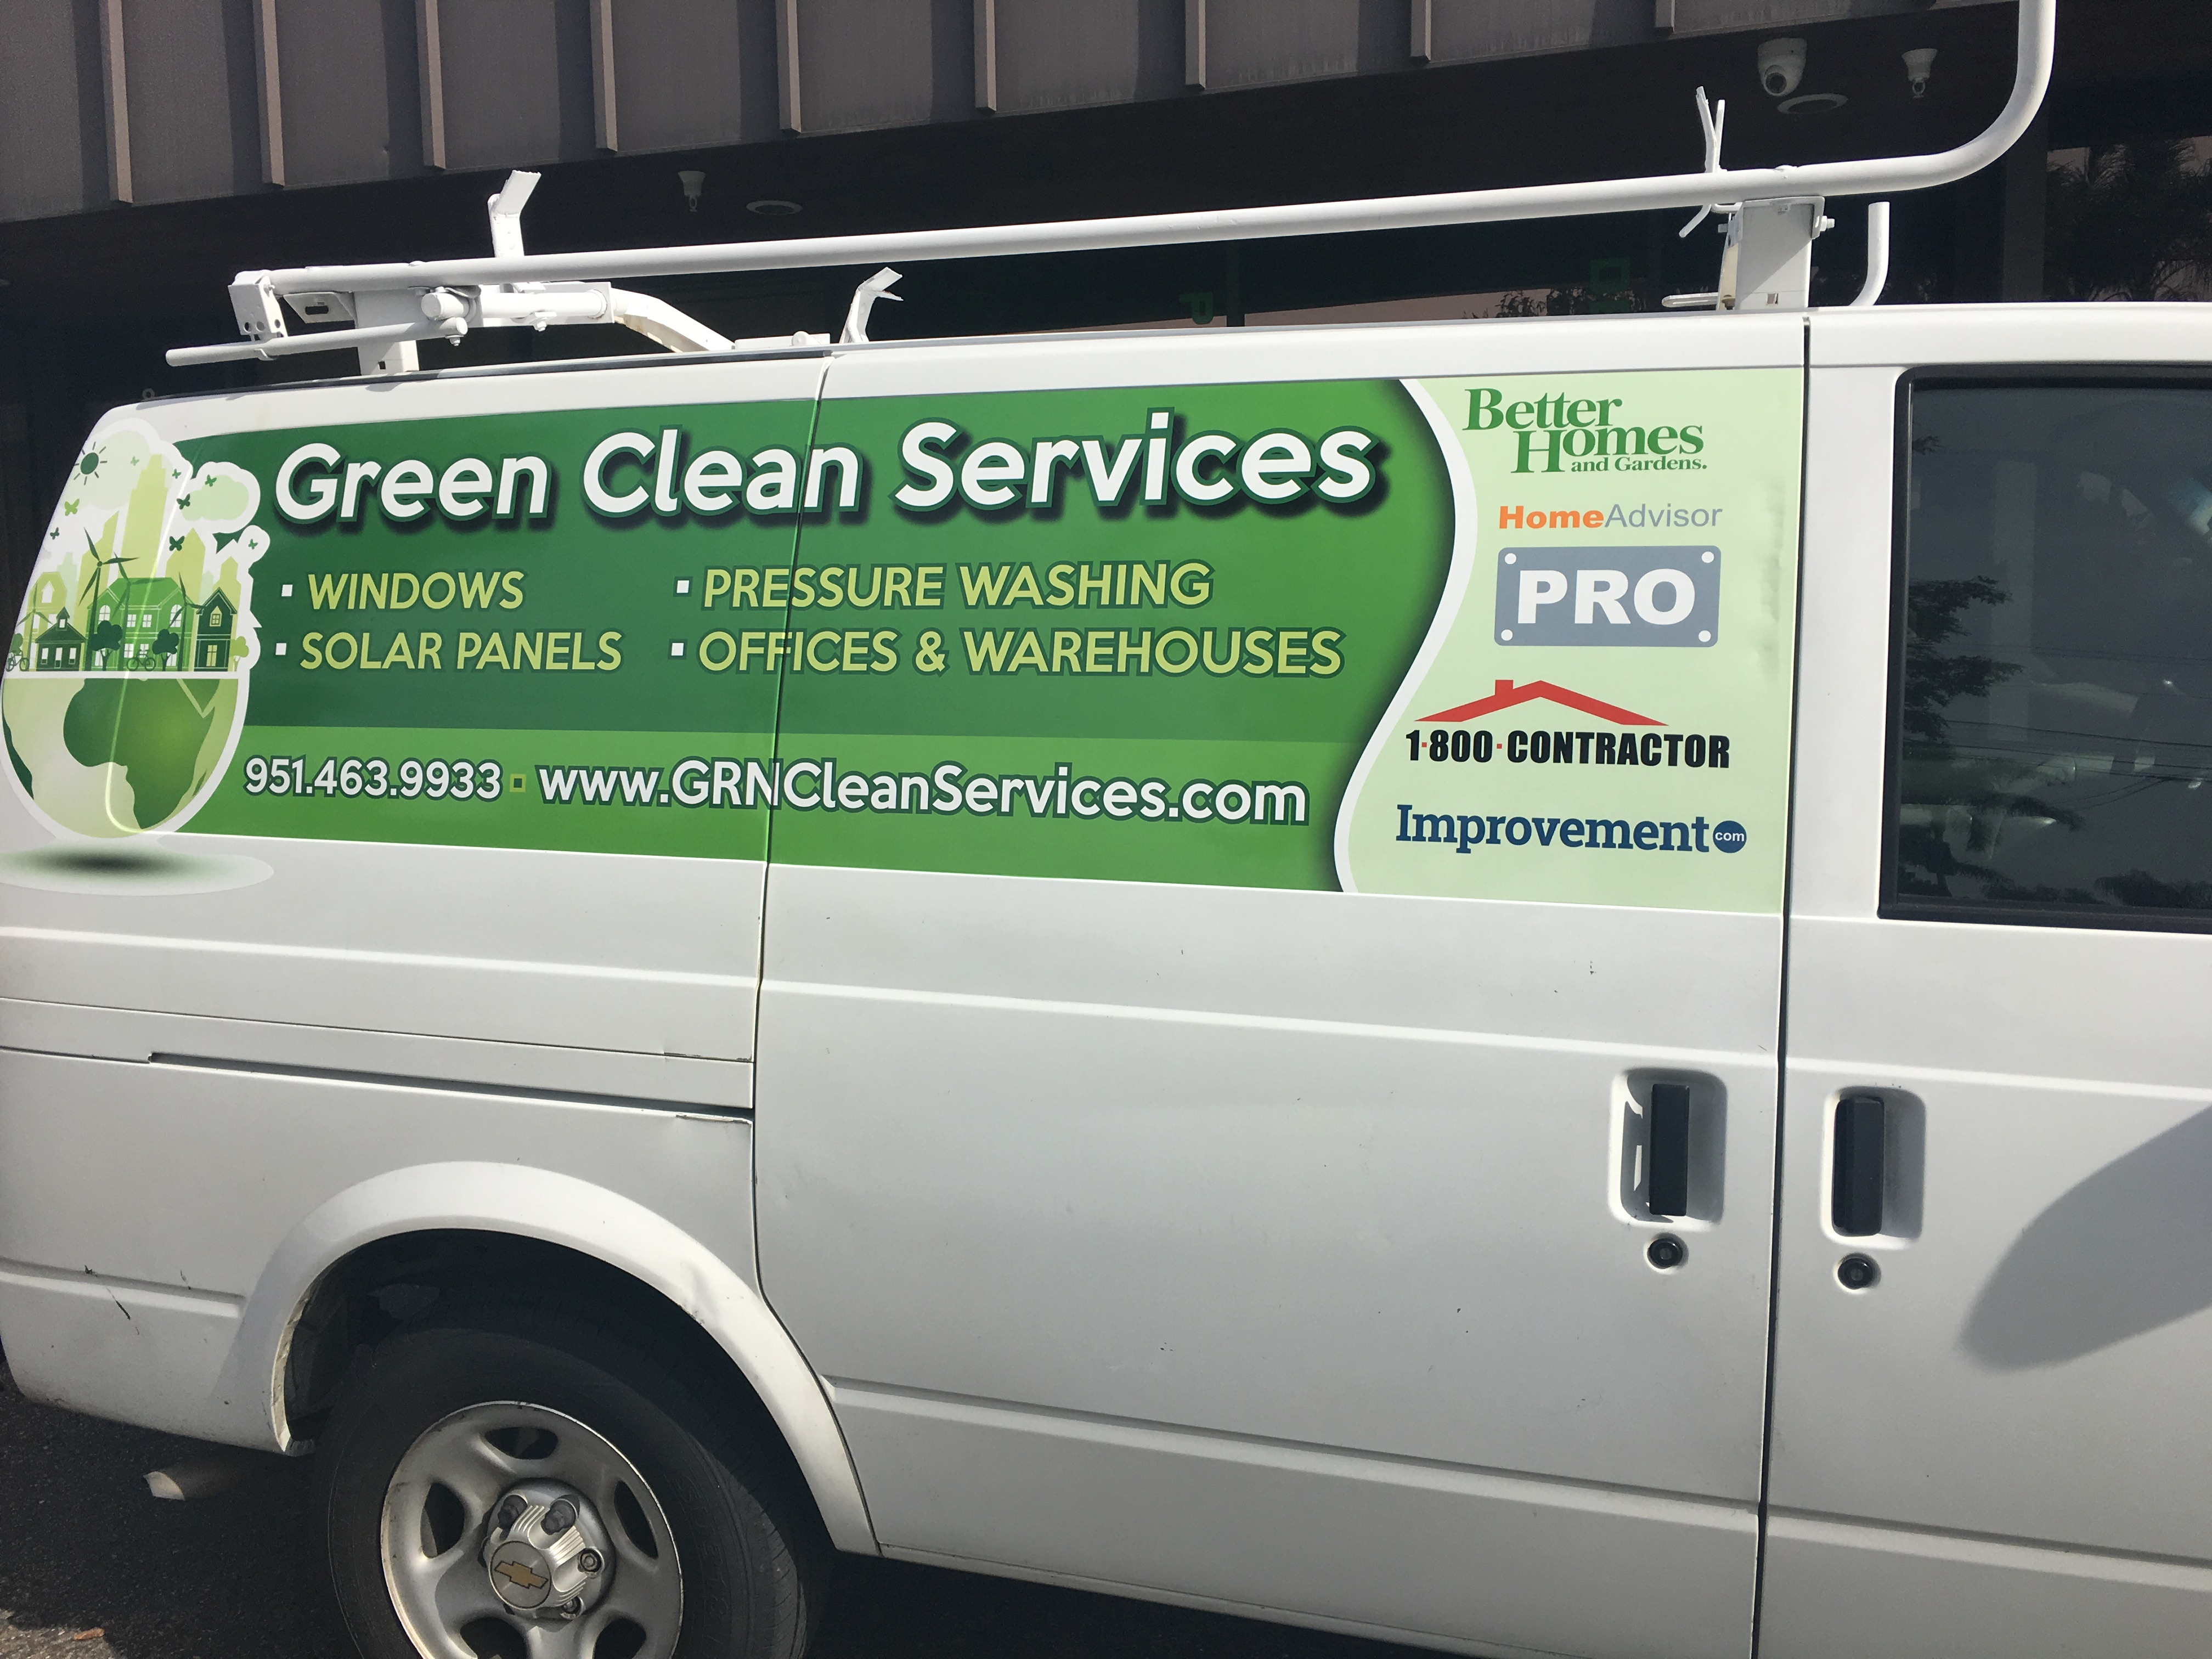 Green Clean Services Window cleaning and Environmental Clean up - Corona, CA 92879 - (951)463-9933 | ShowMeLocal.com